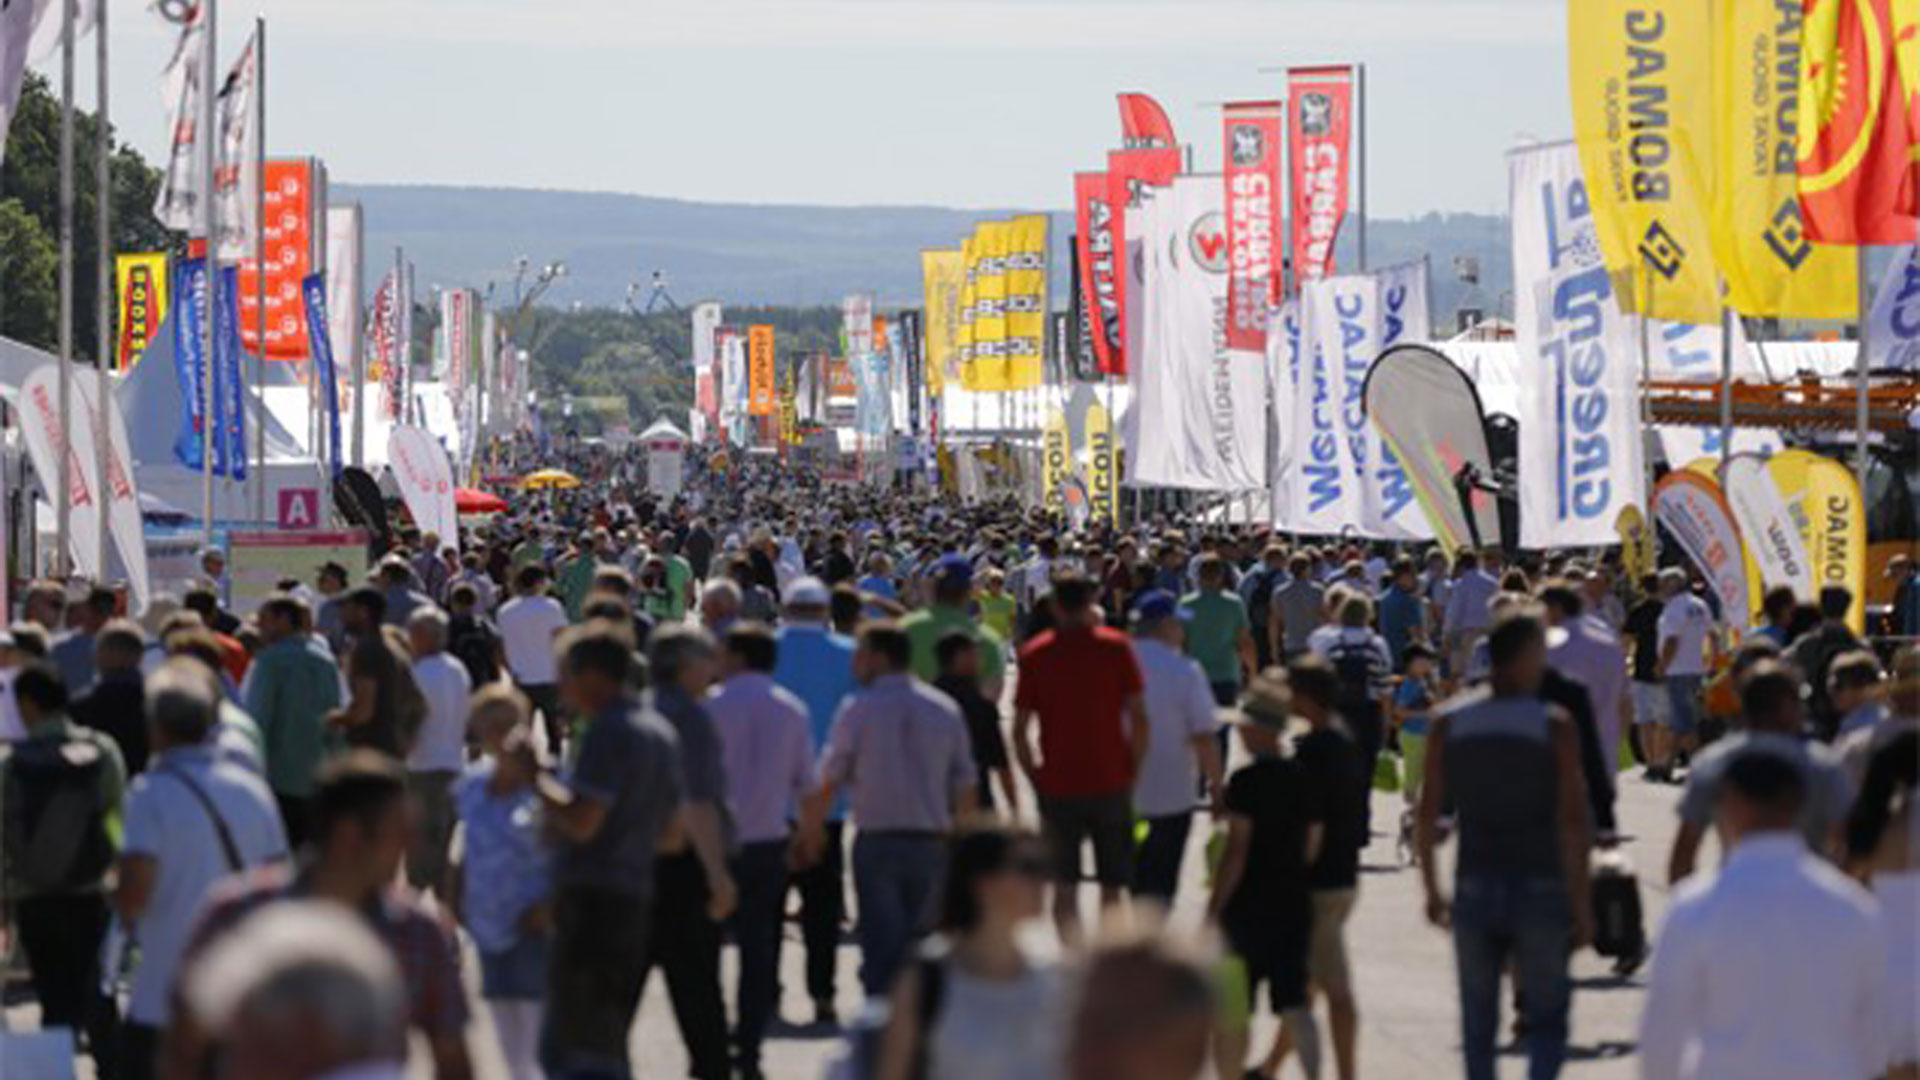 (Deutsch) Outdoor Messe -